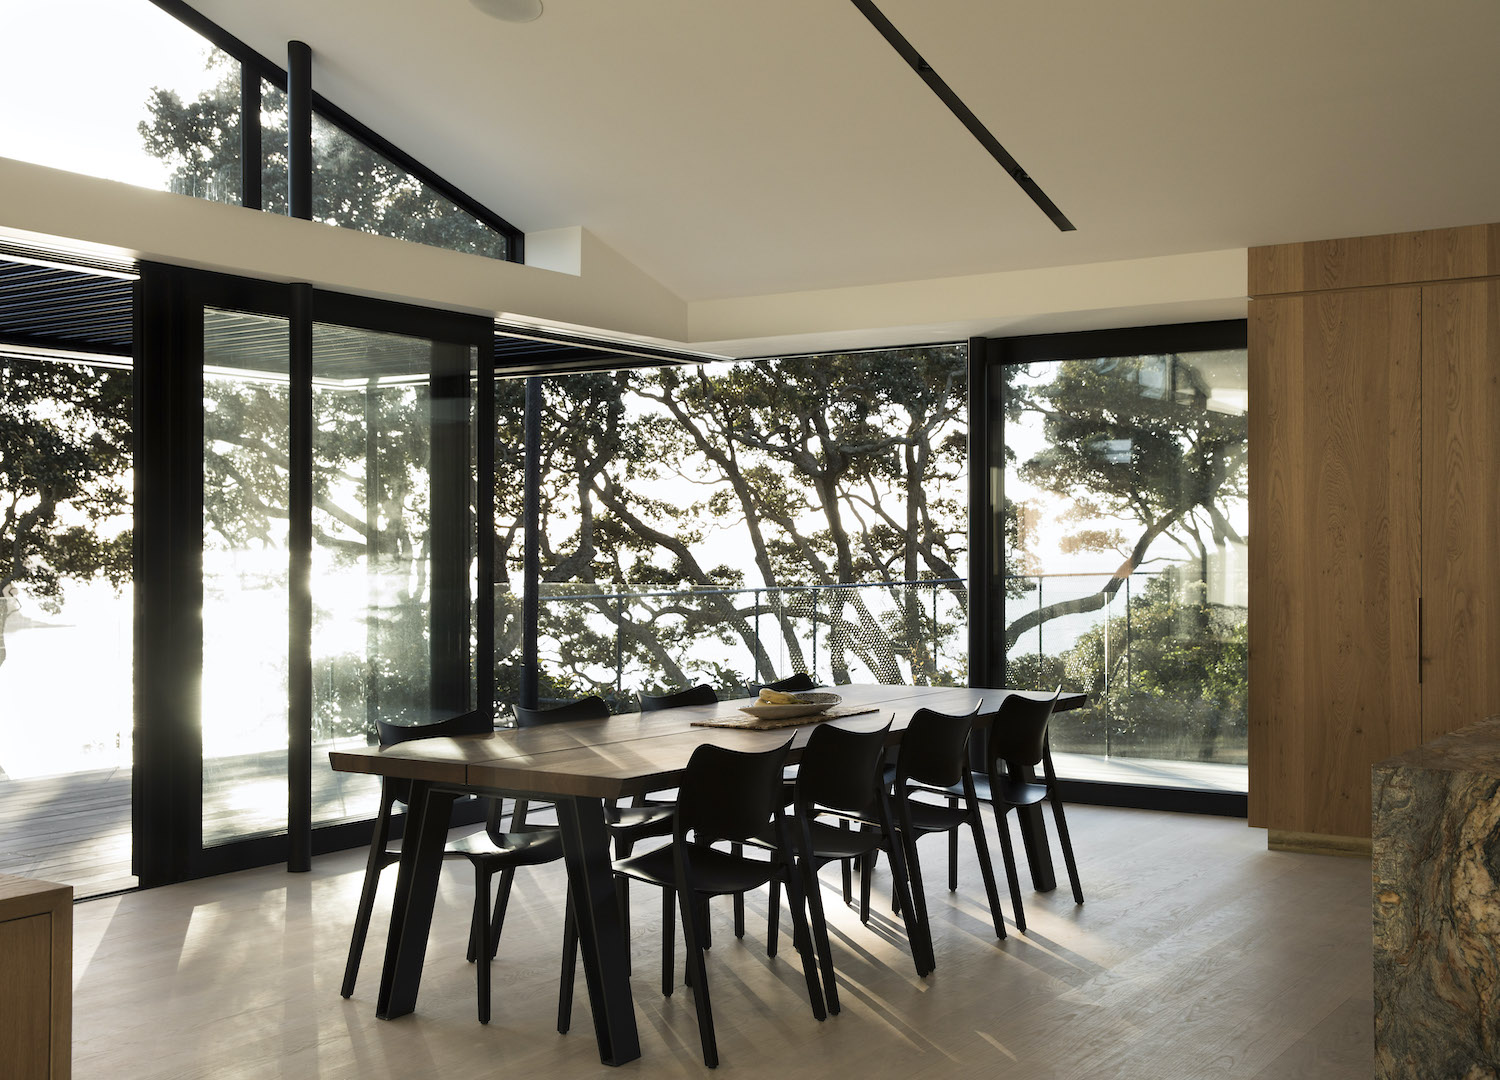 est living herne bay hideaway lloyd hartley architects30